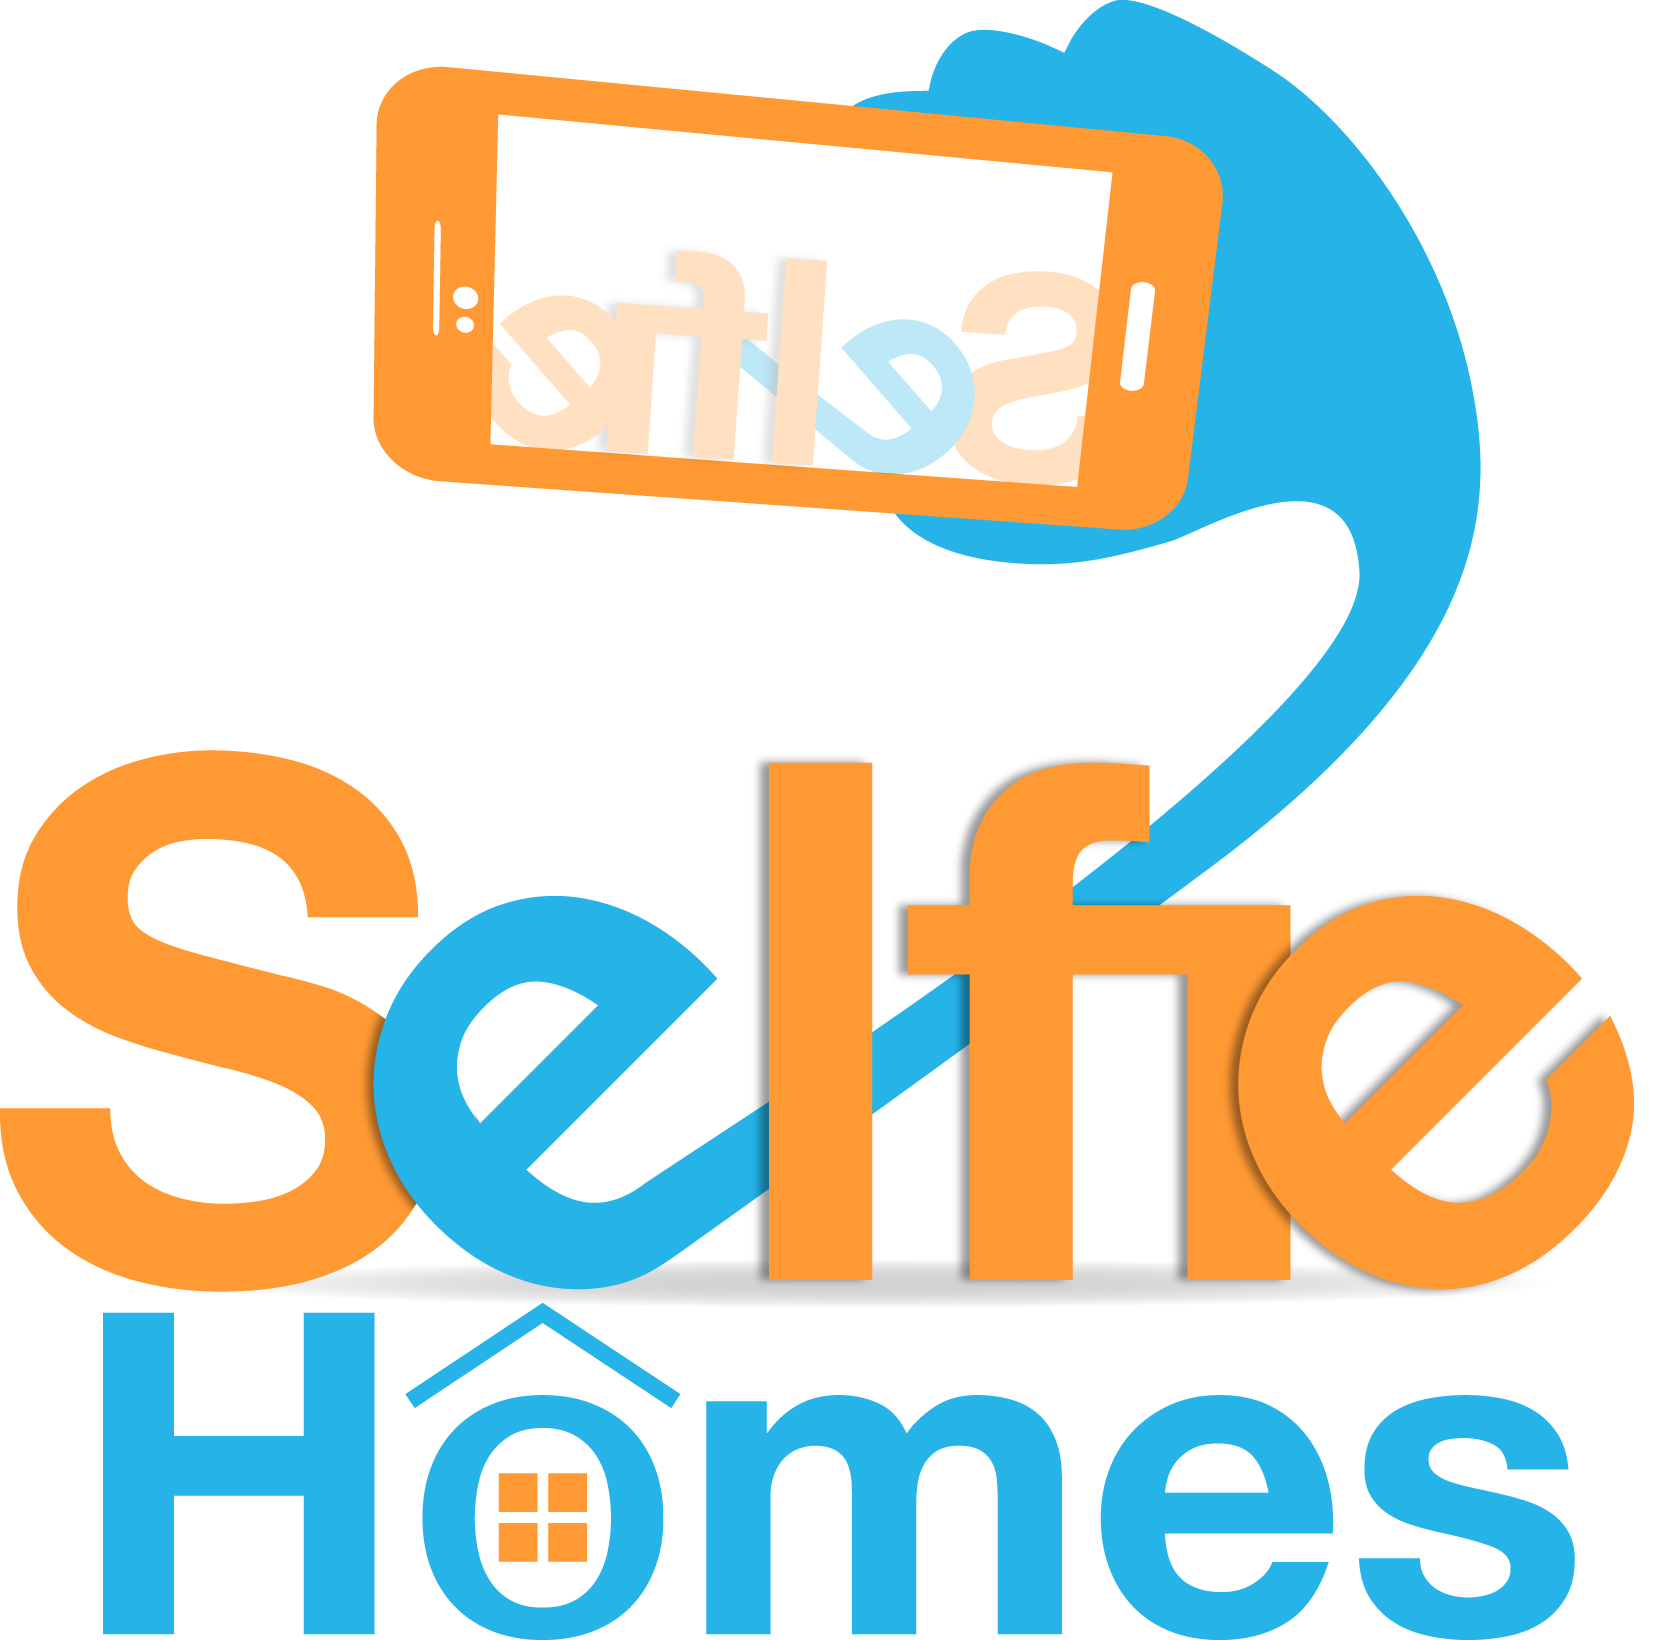 Neighbors clipart townhouse. Home page selfie homes